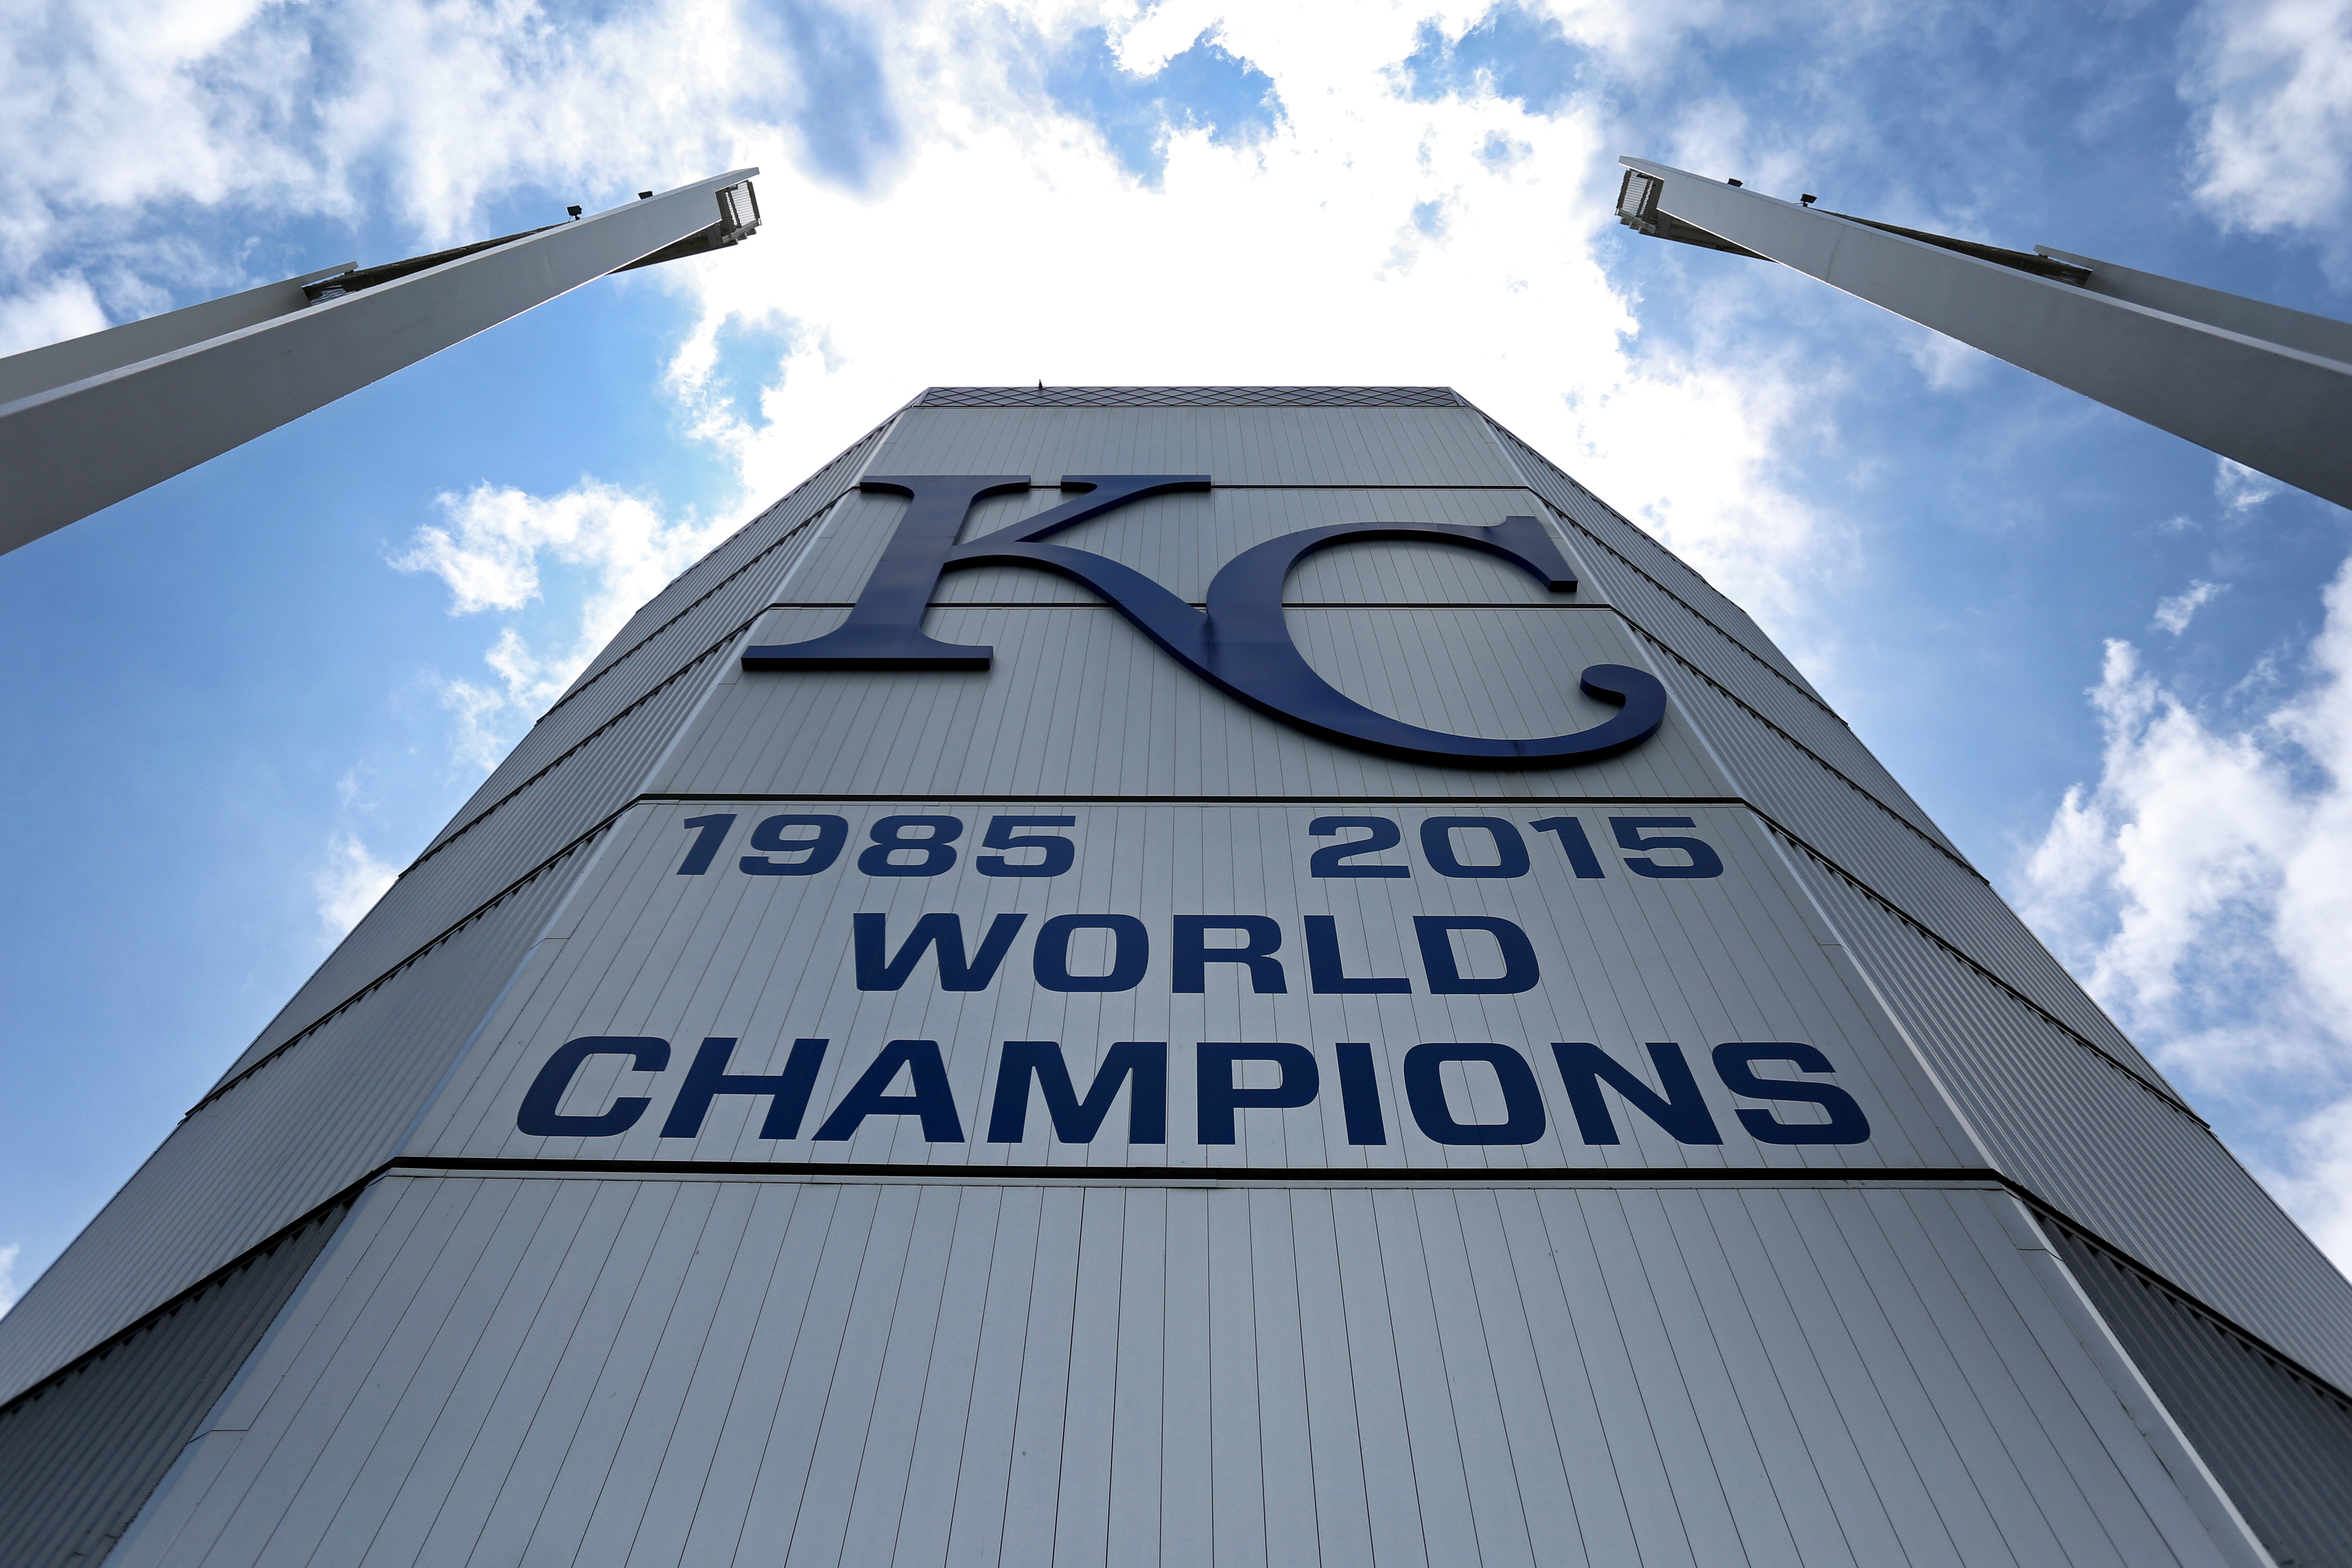 A view of the back of the video board that highlights the Kansas City Royals World Series victories during an MLB game between the New York Yankees and Kansas City Royals on May 25, 2019 at Kauffman Stadium in Kansas City, MO.